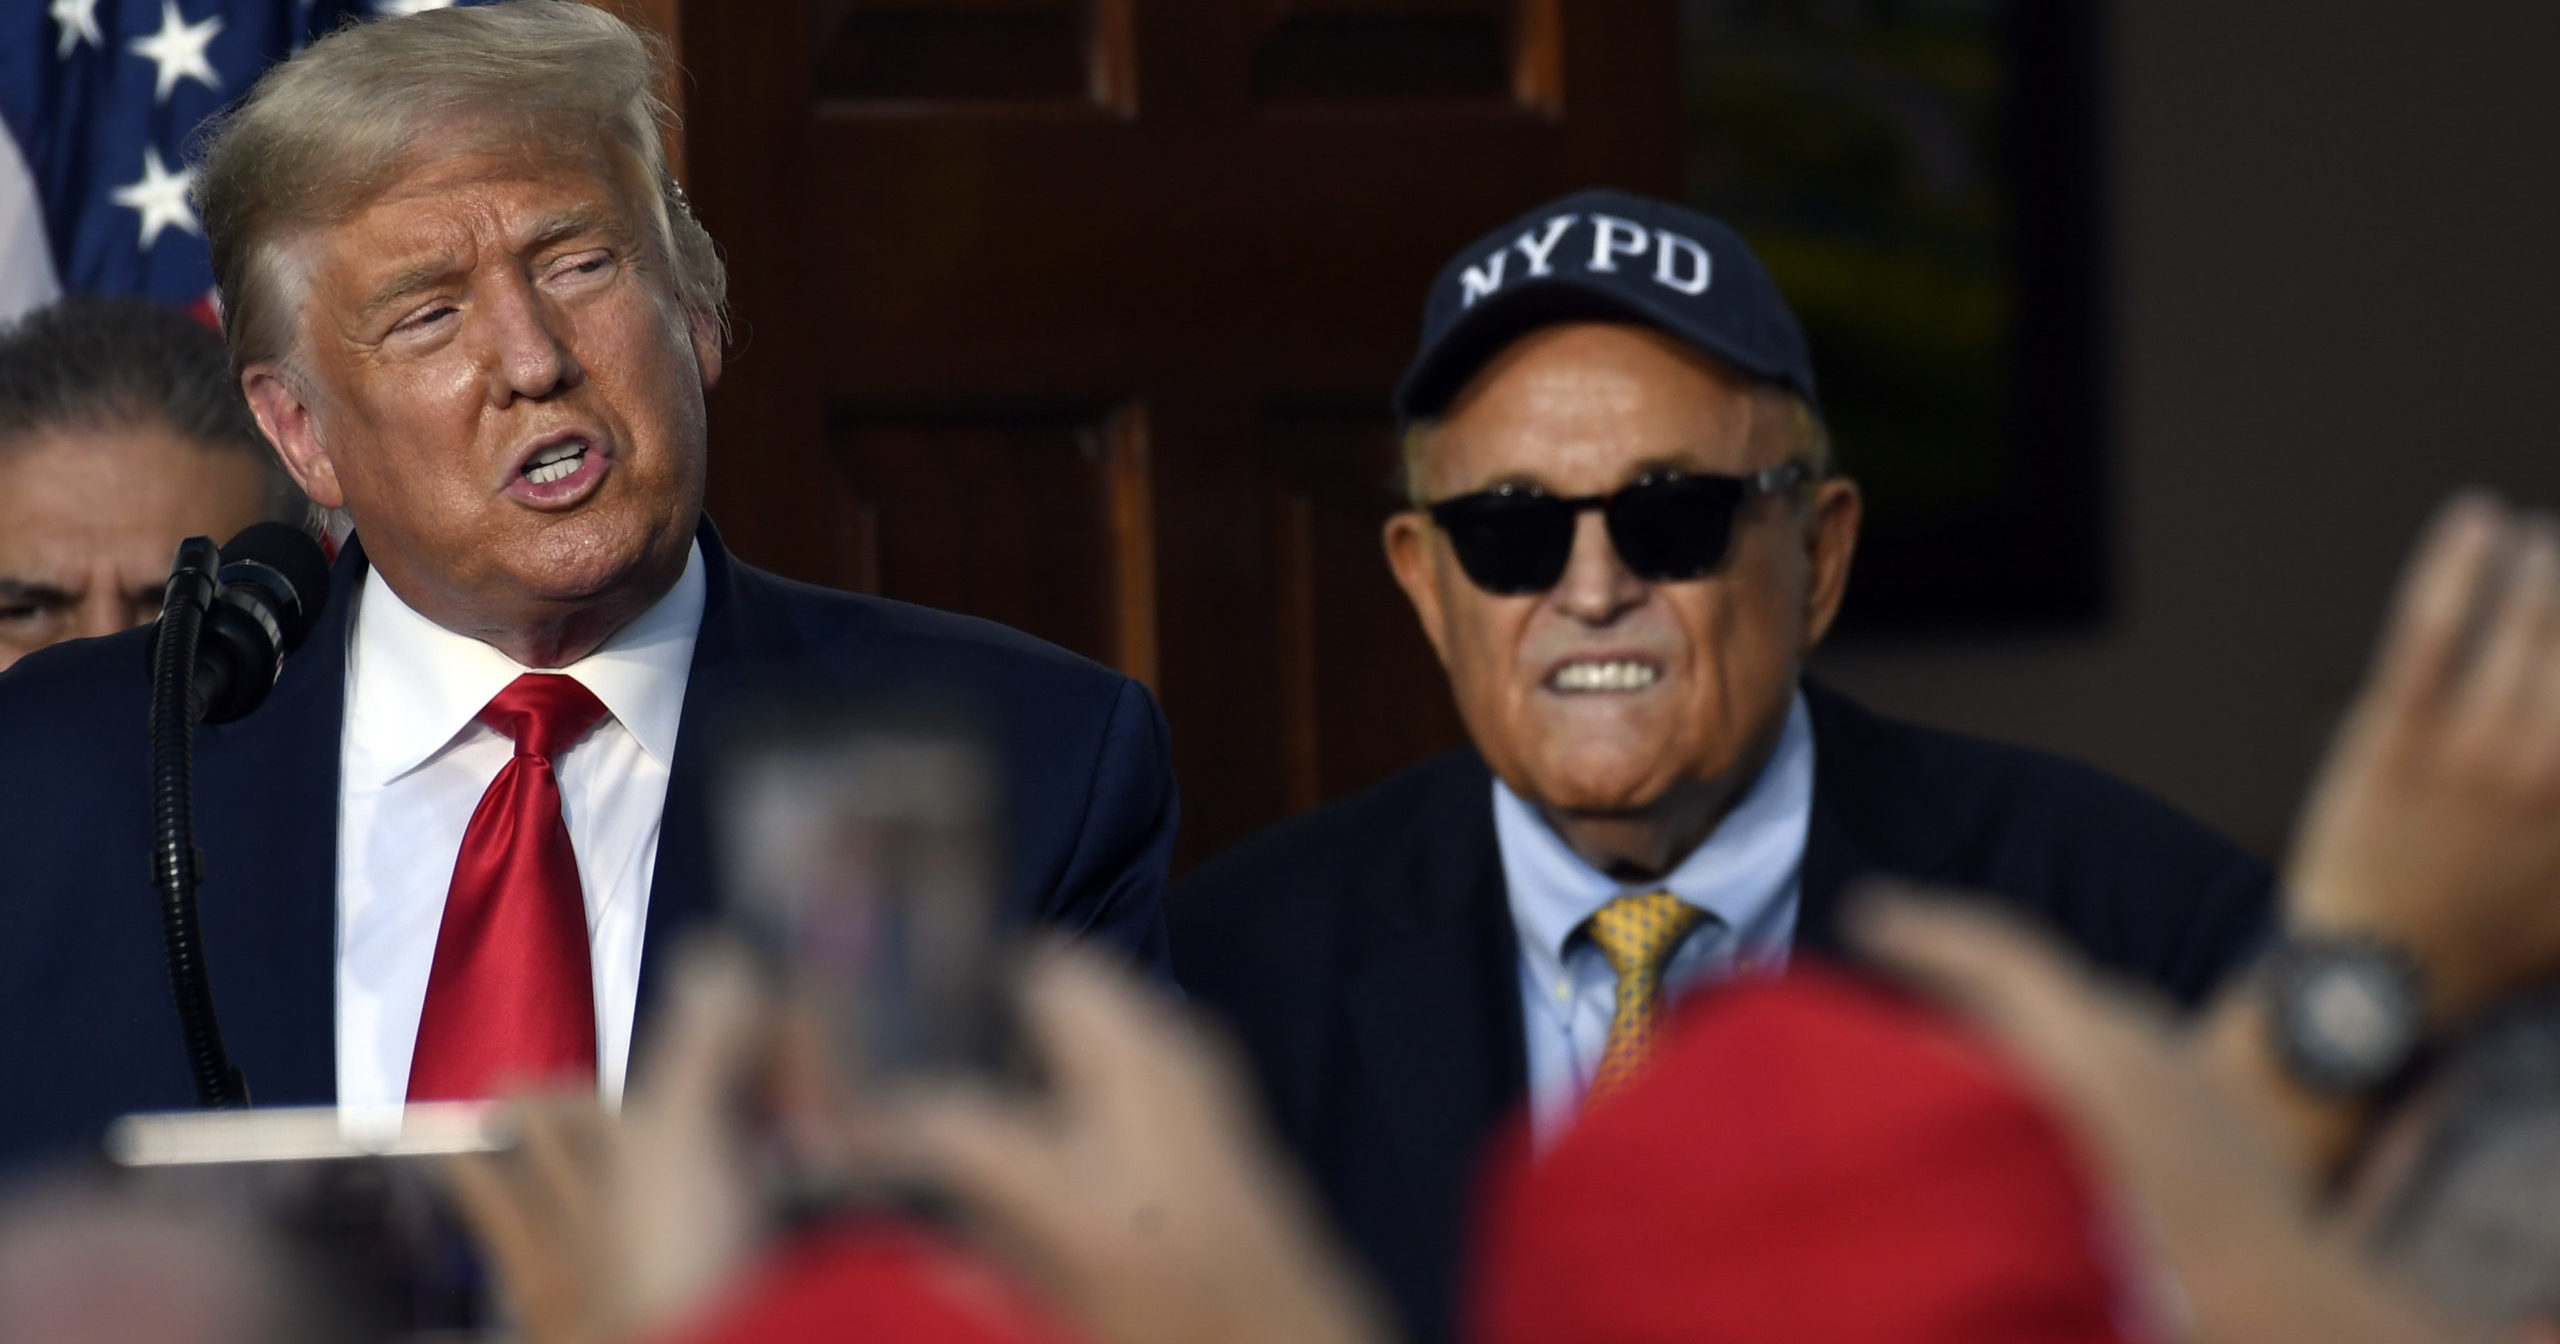 President Donald Trump speaks as Rudy Giuliani, an attorney for Trump, watches during an event at Trump National Golf Club on Aug. 14, 2020, in Bedminster, New Jersey, with members of the City of New York Police Department Benevolent Association.